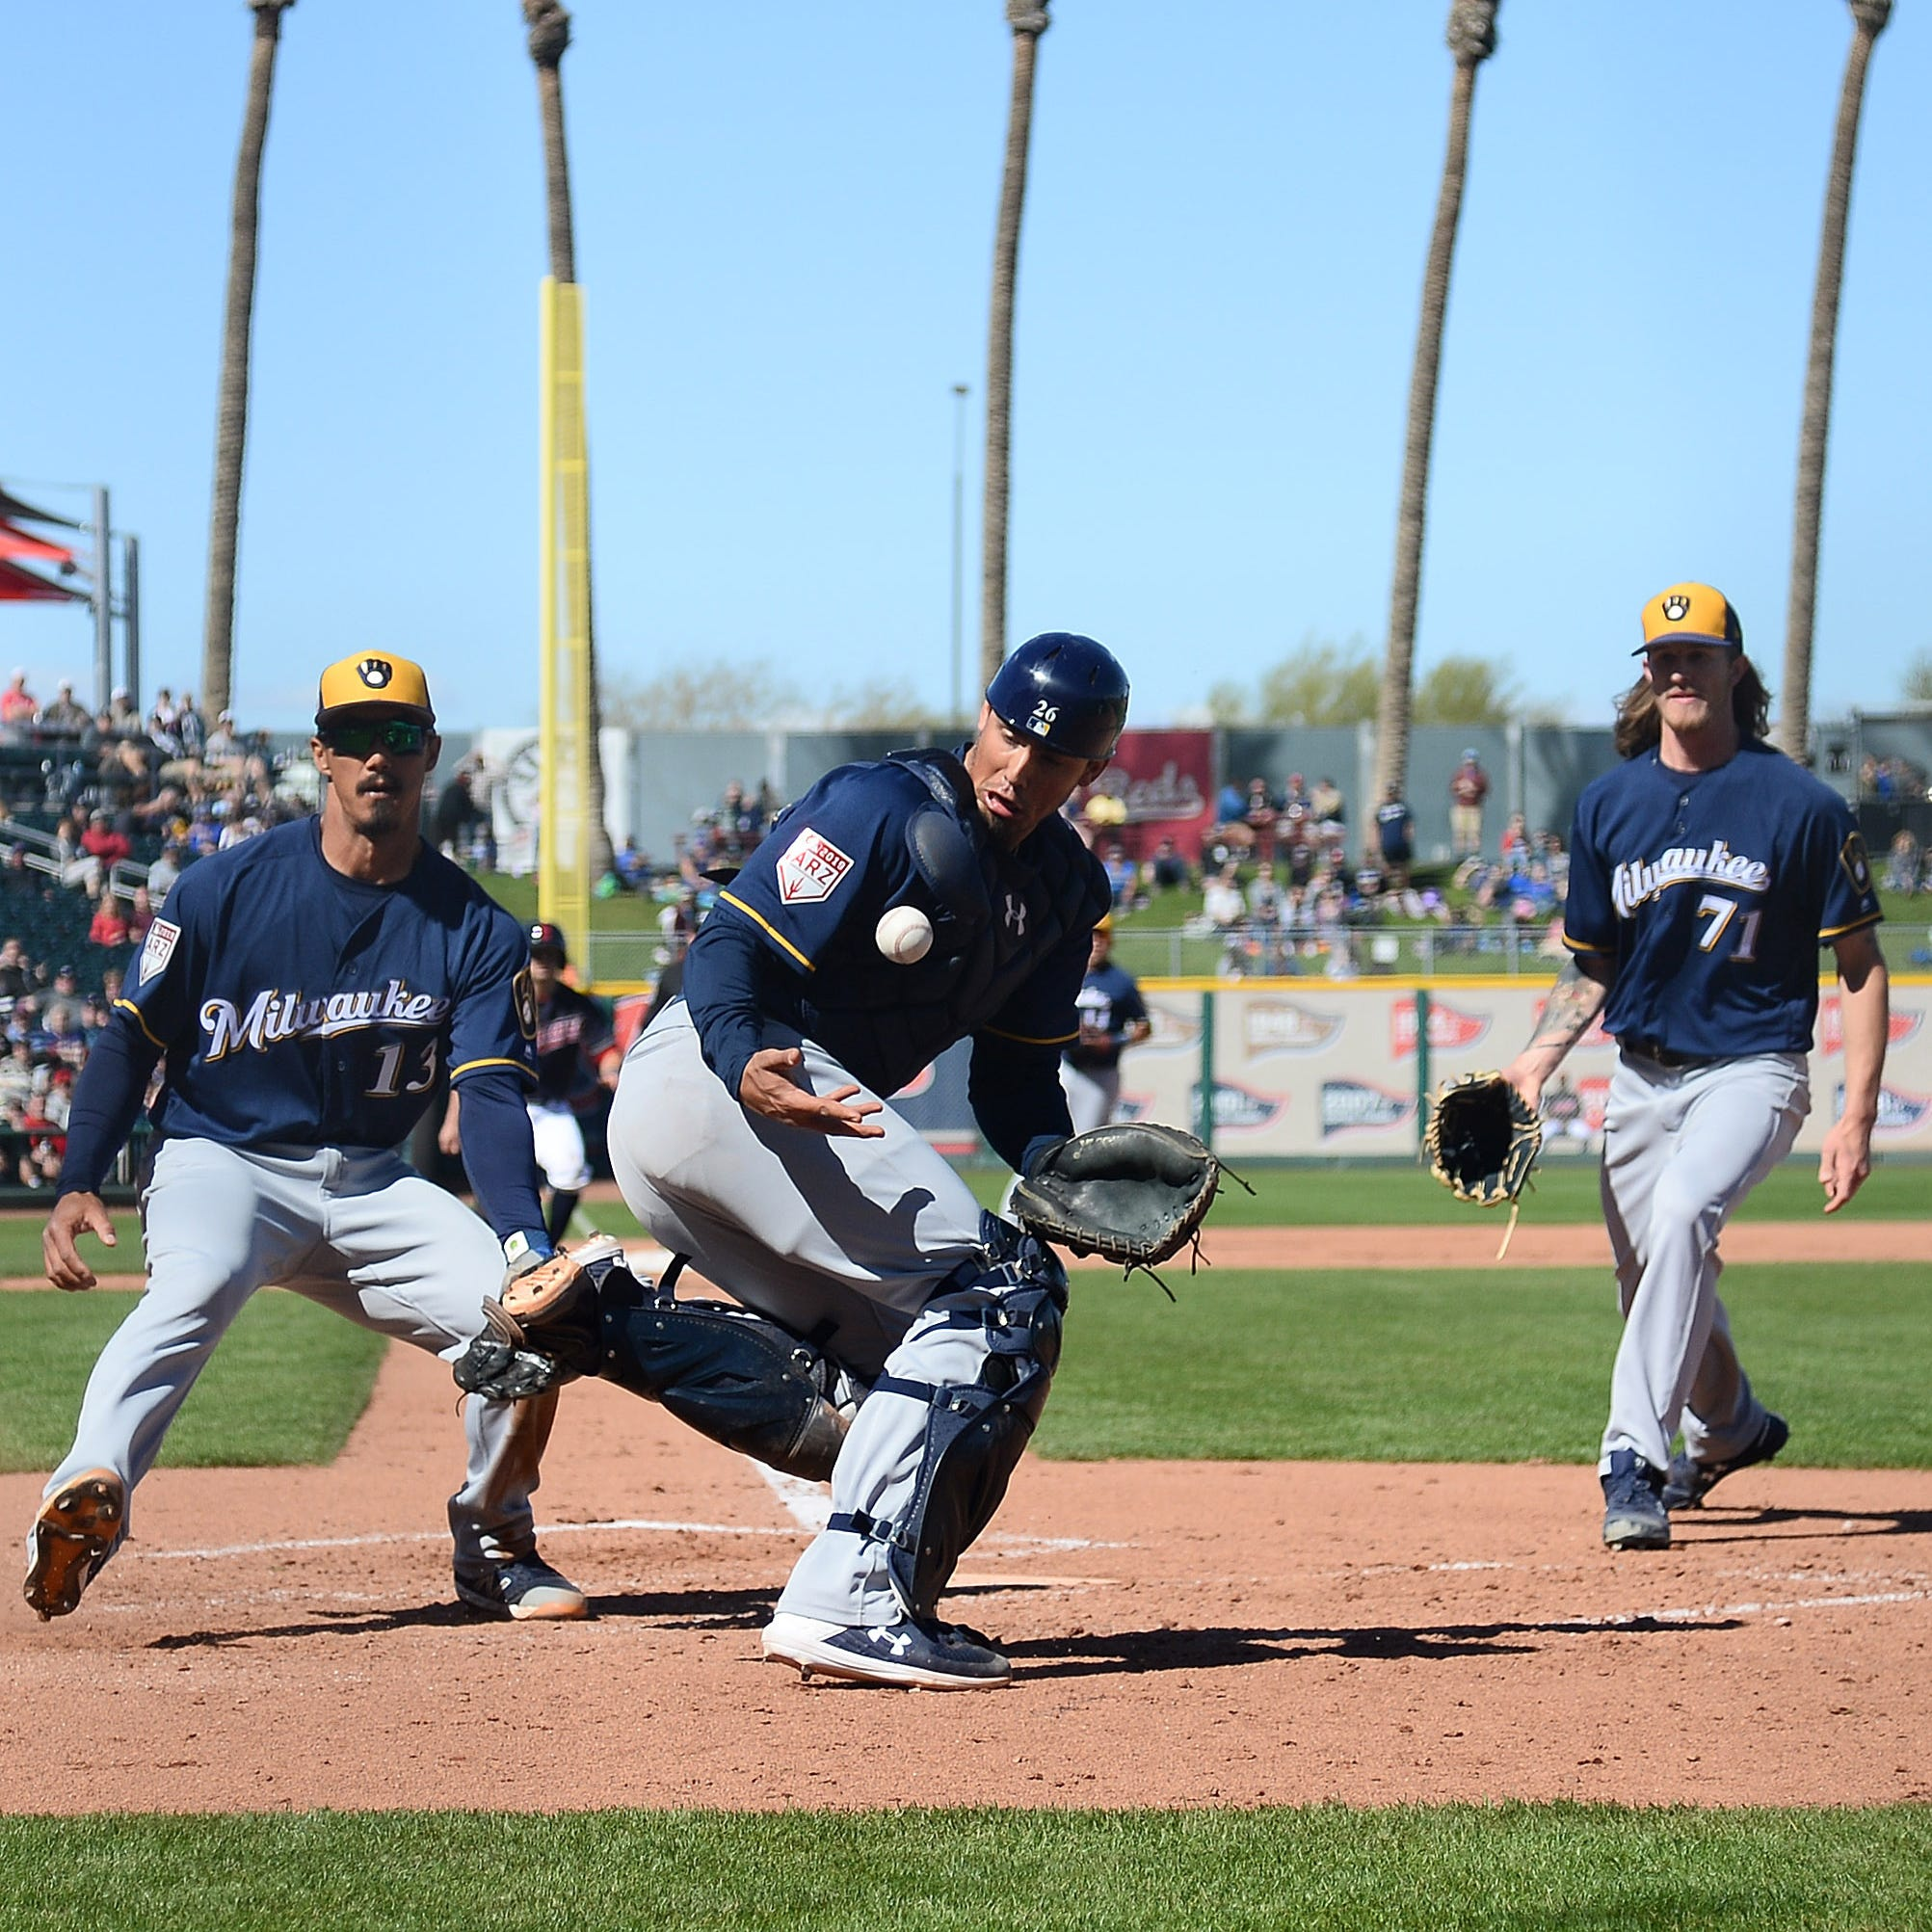 Camp report: Chase Anderson has another rough outing as the Brewers fall to the Indians